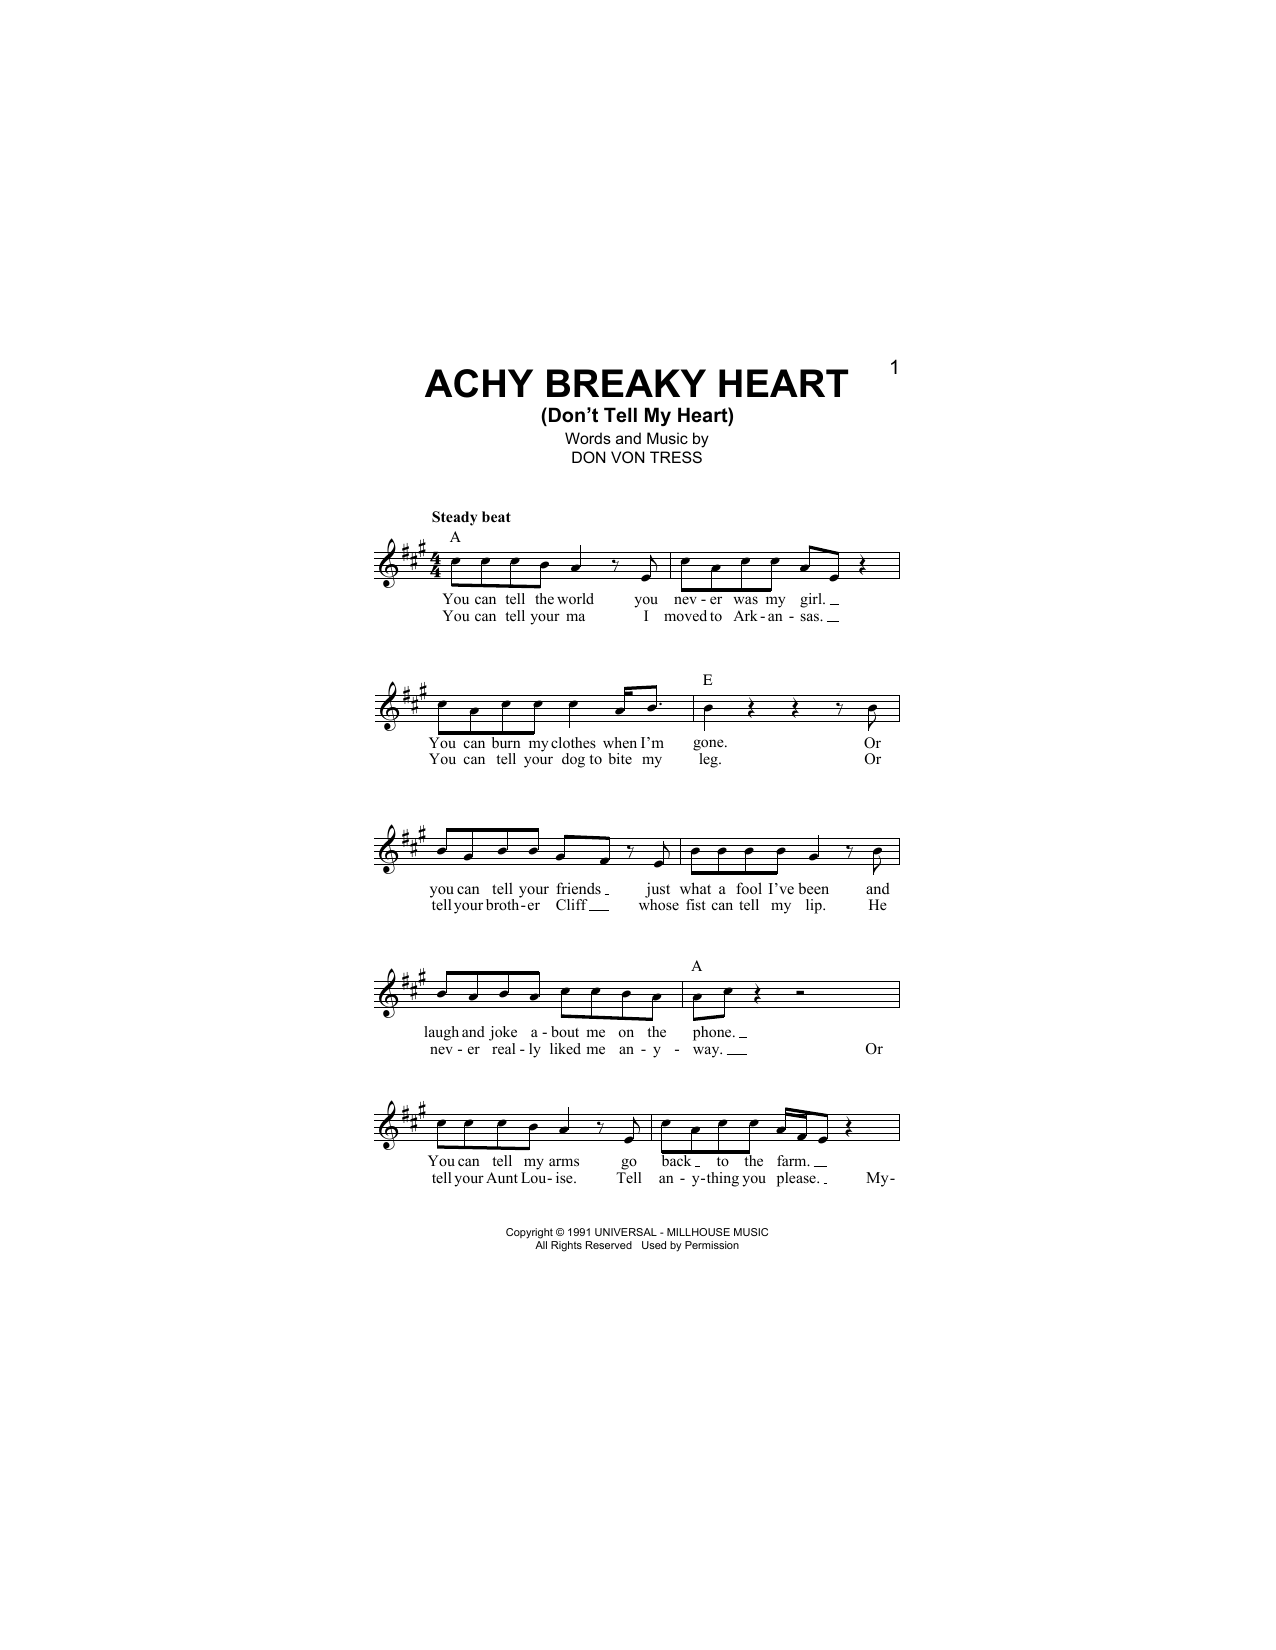 Billy Ray Cyrus - Achy Breaky Heart (Don't Tell My Heart)